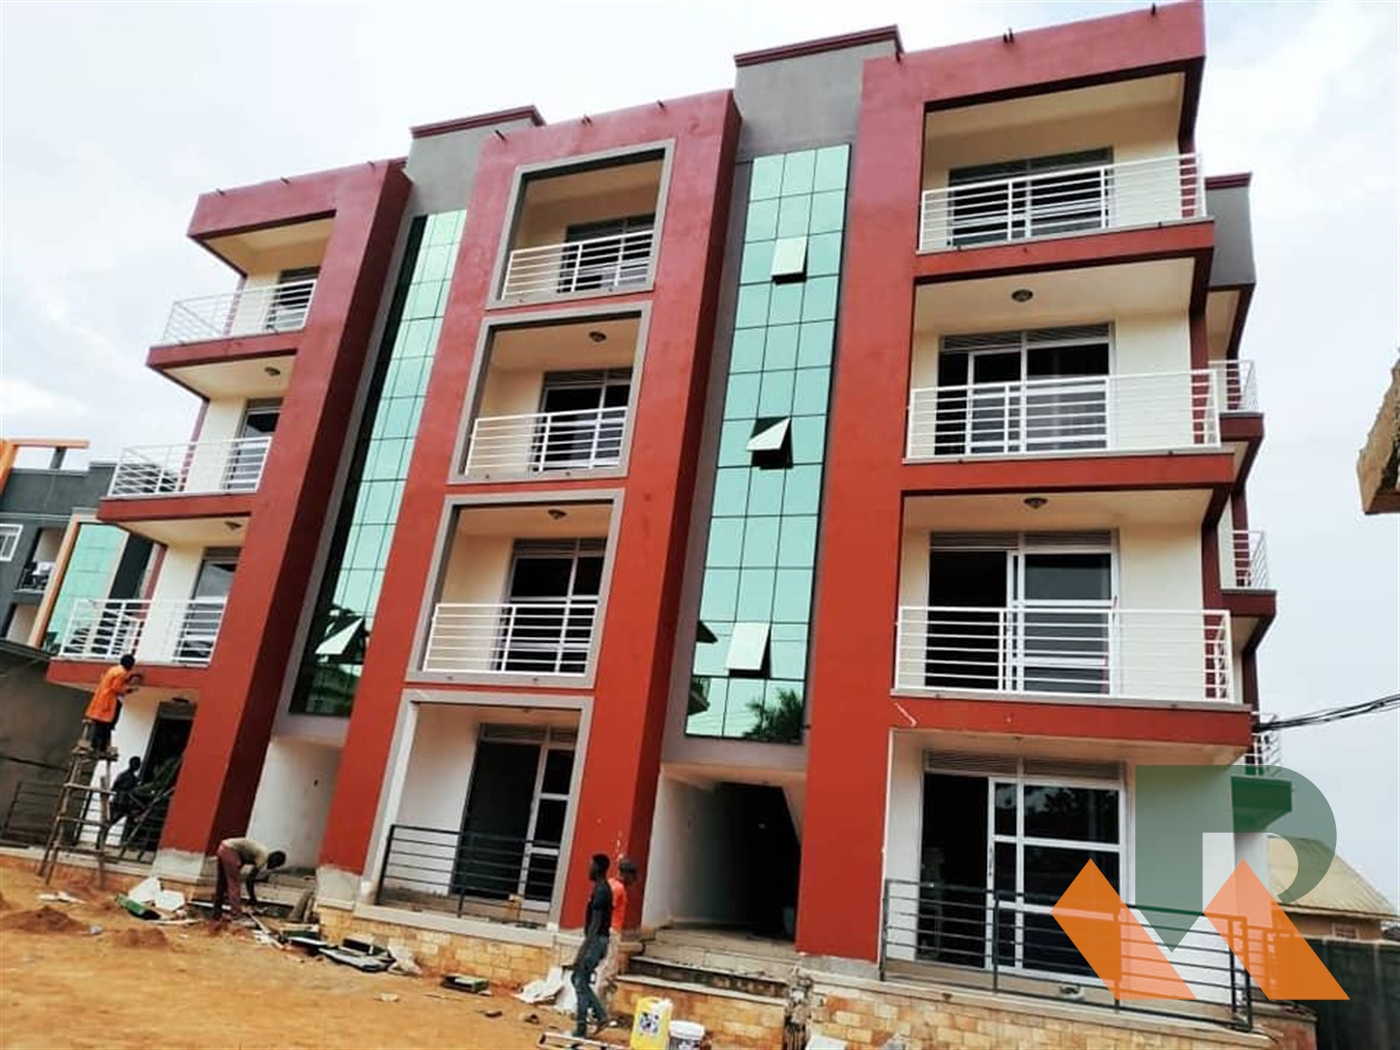 Apartment block for sale in Kyaliwajjala Wakiso